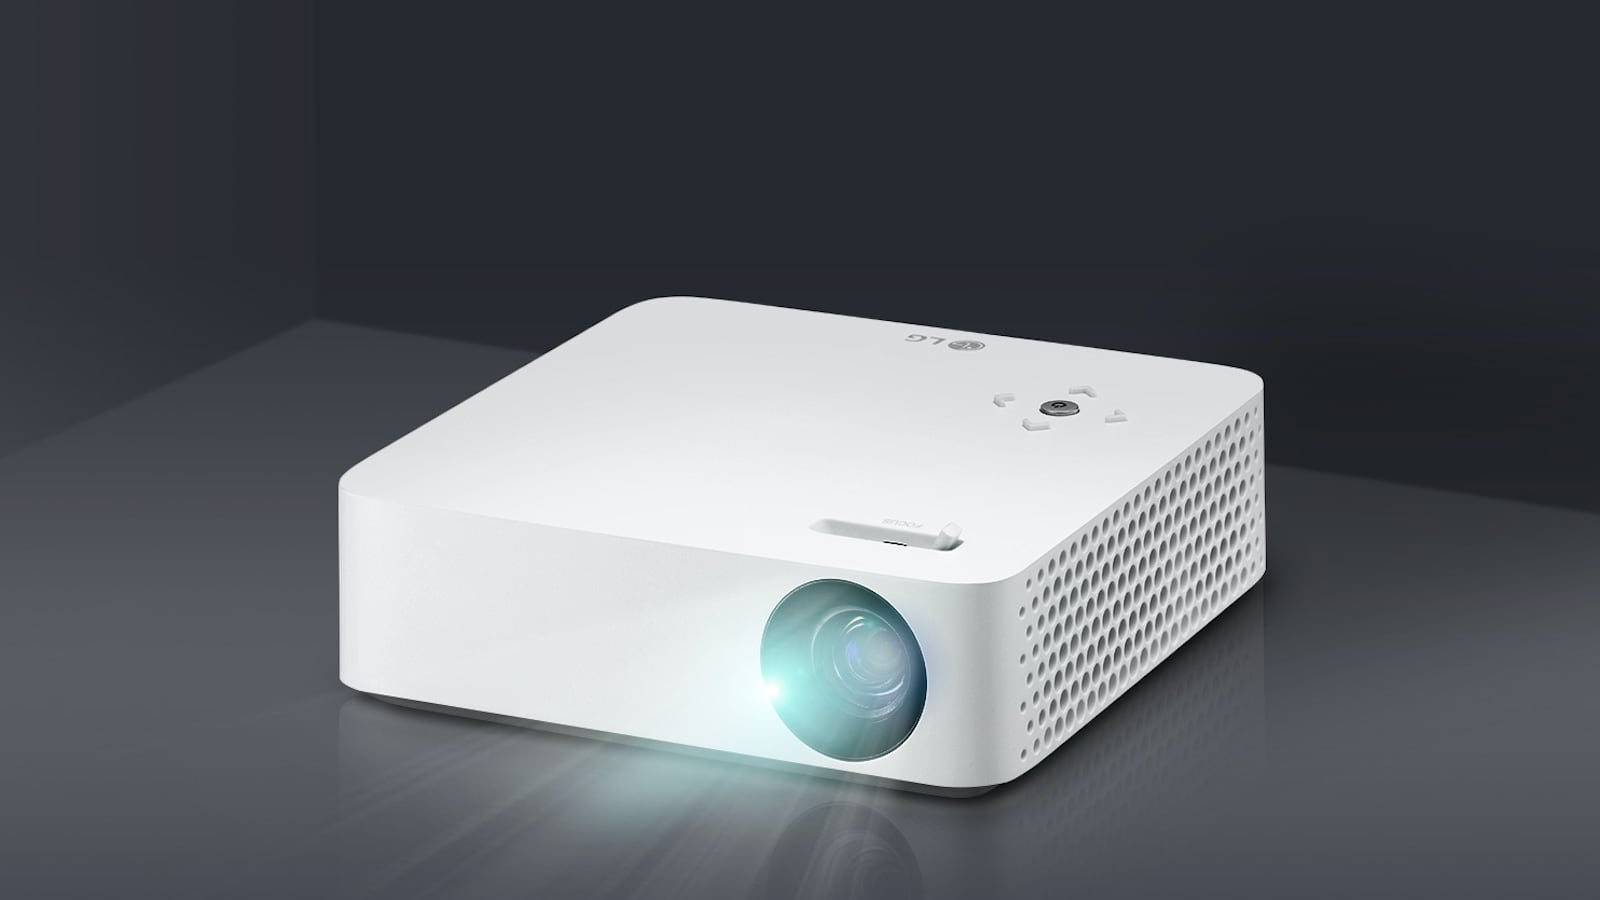 LG CineBeam PH30N LED Projector produces a screen up to 100 inches